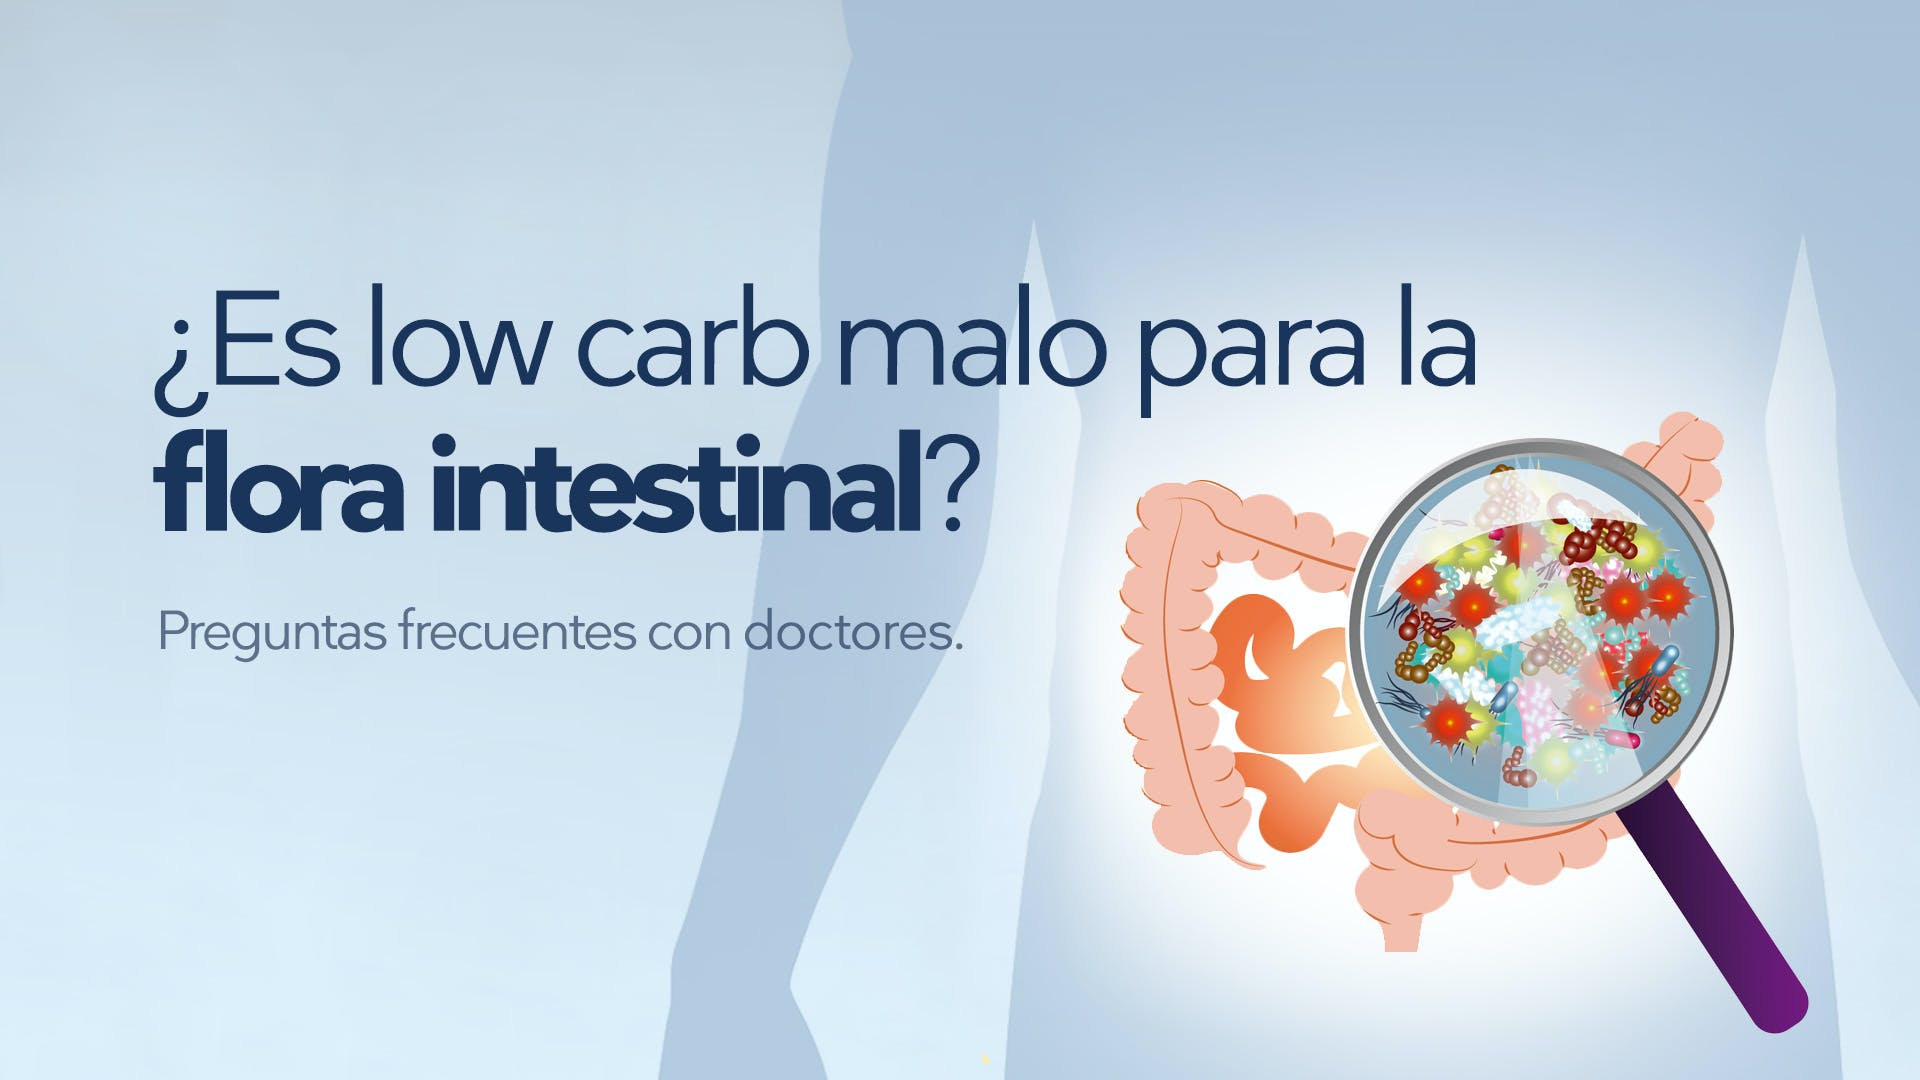 ¿Es low carb malo para la flora intestinal?